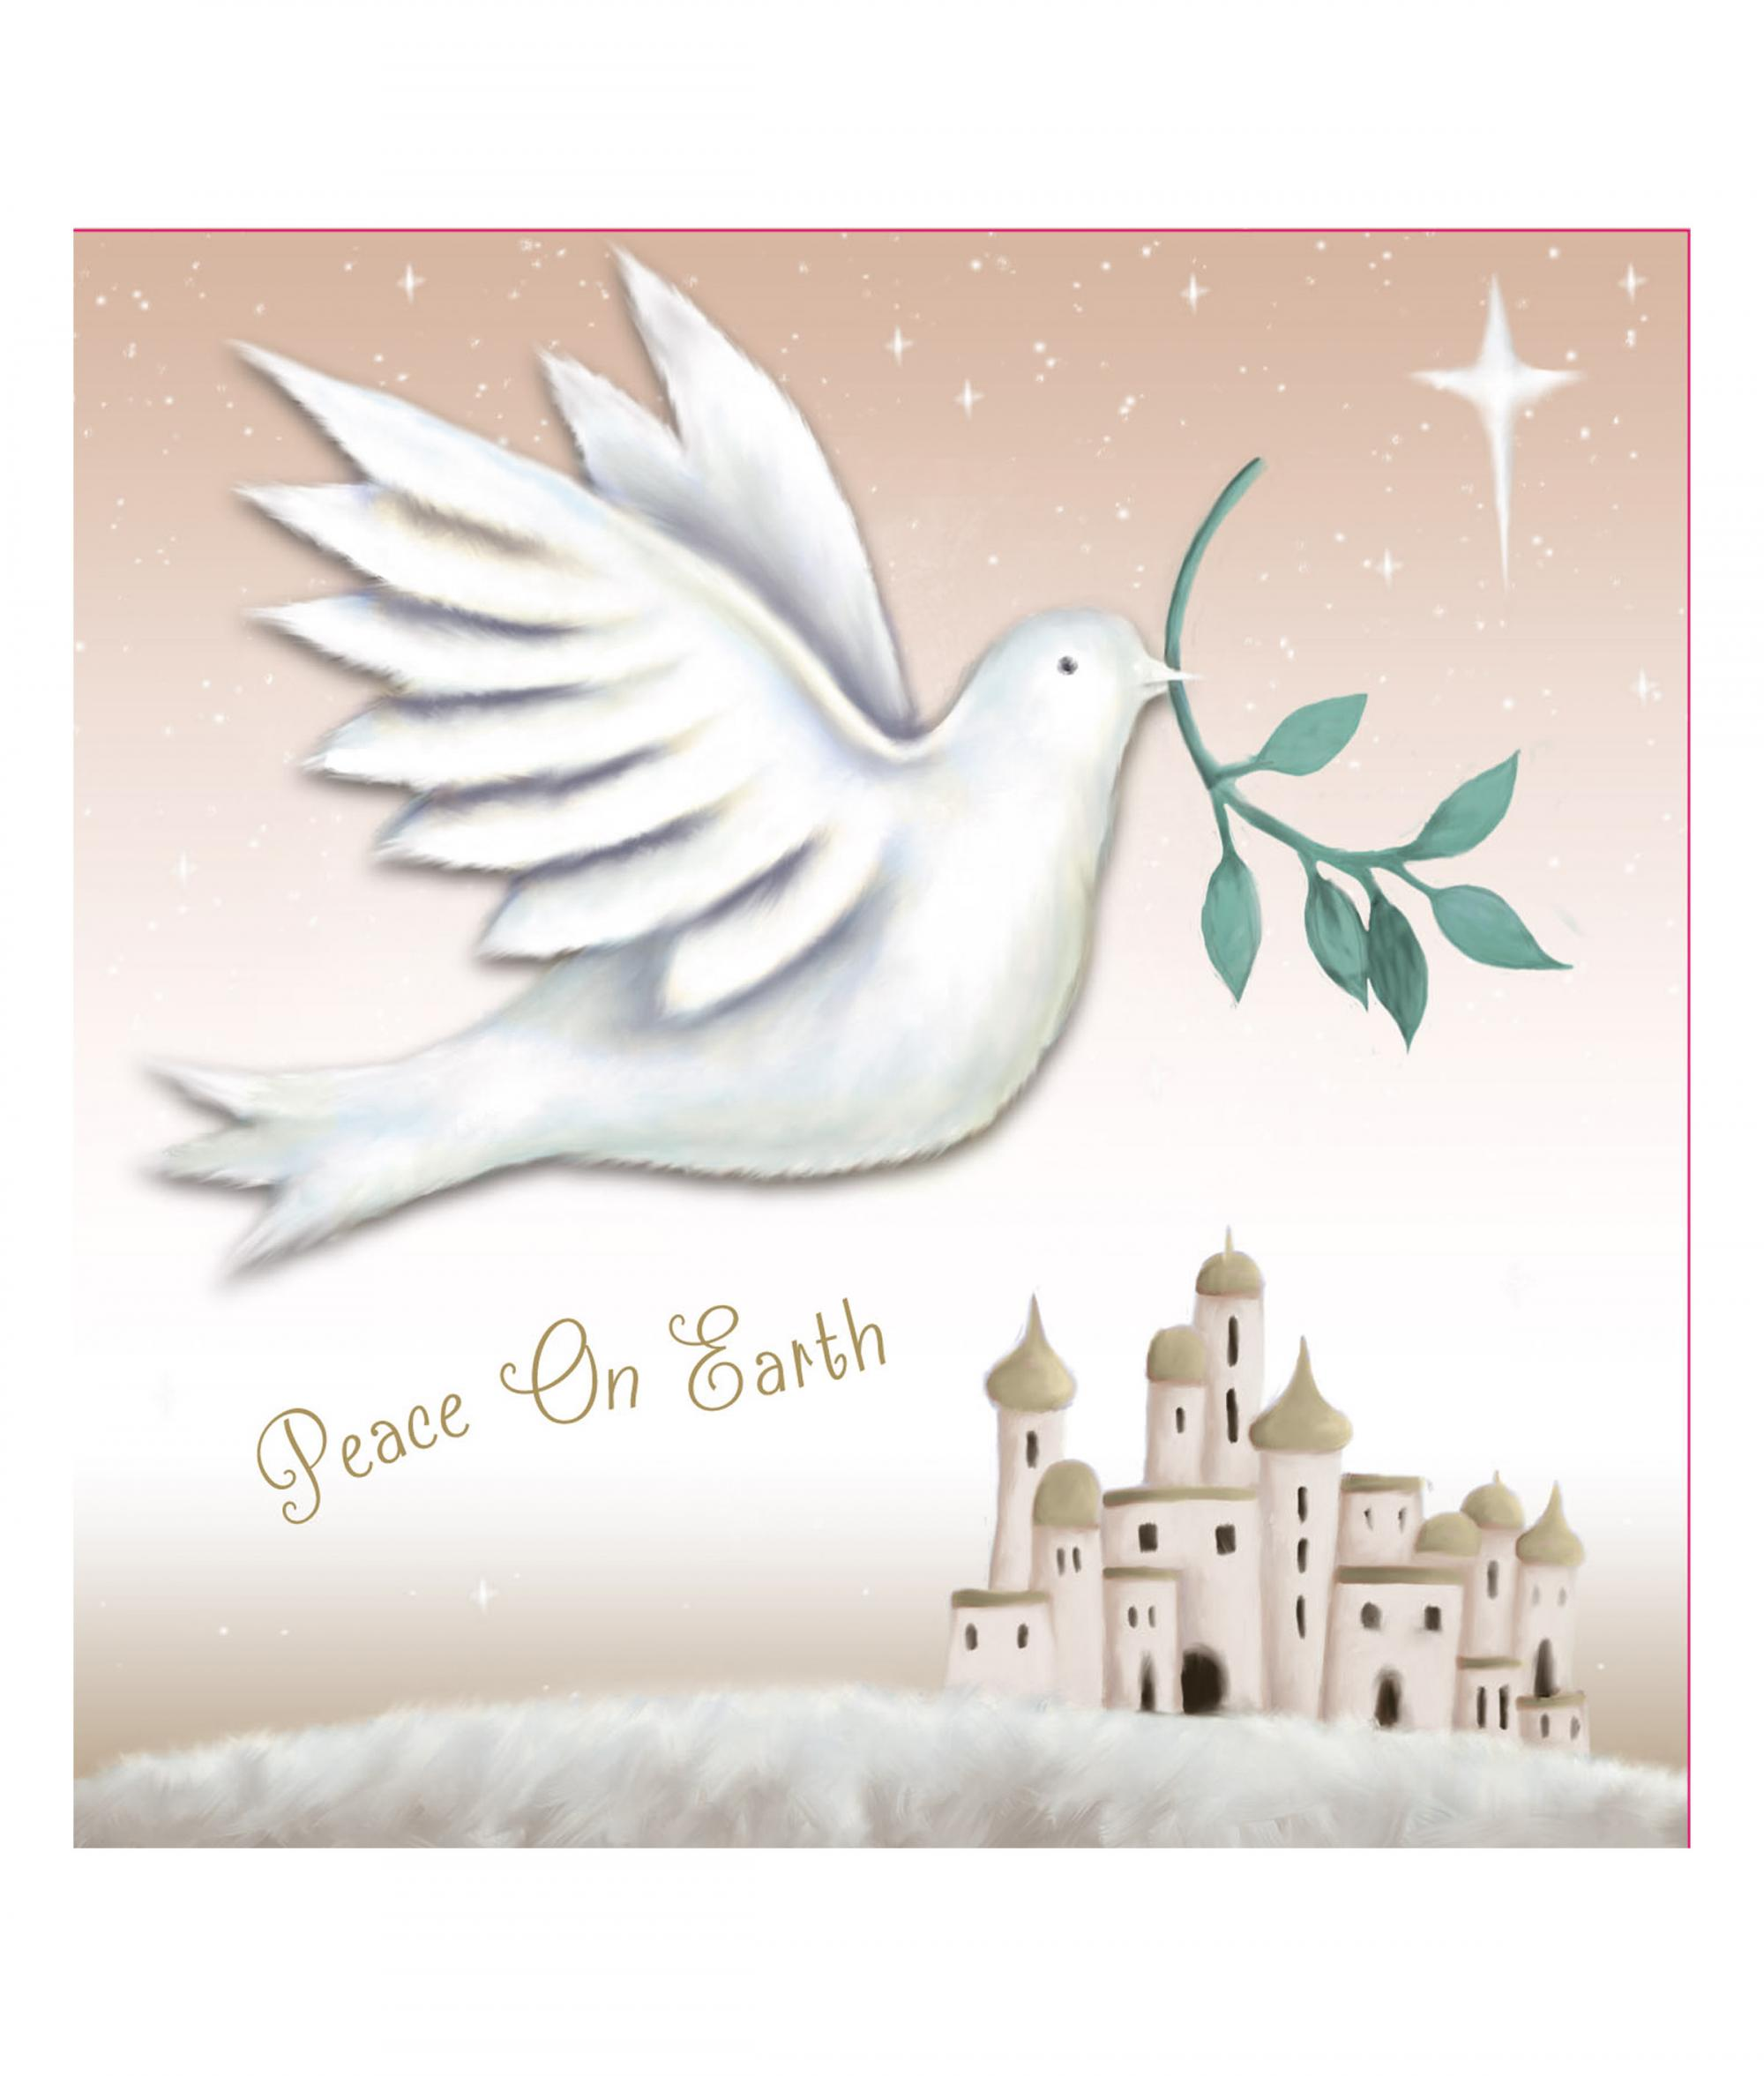 Peace on Earth Christmas Card - Pack of 10 | Cancer Research UK ...